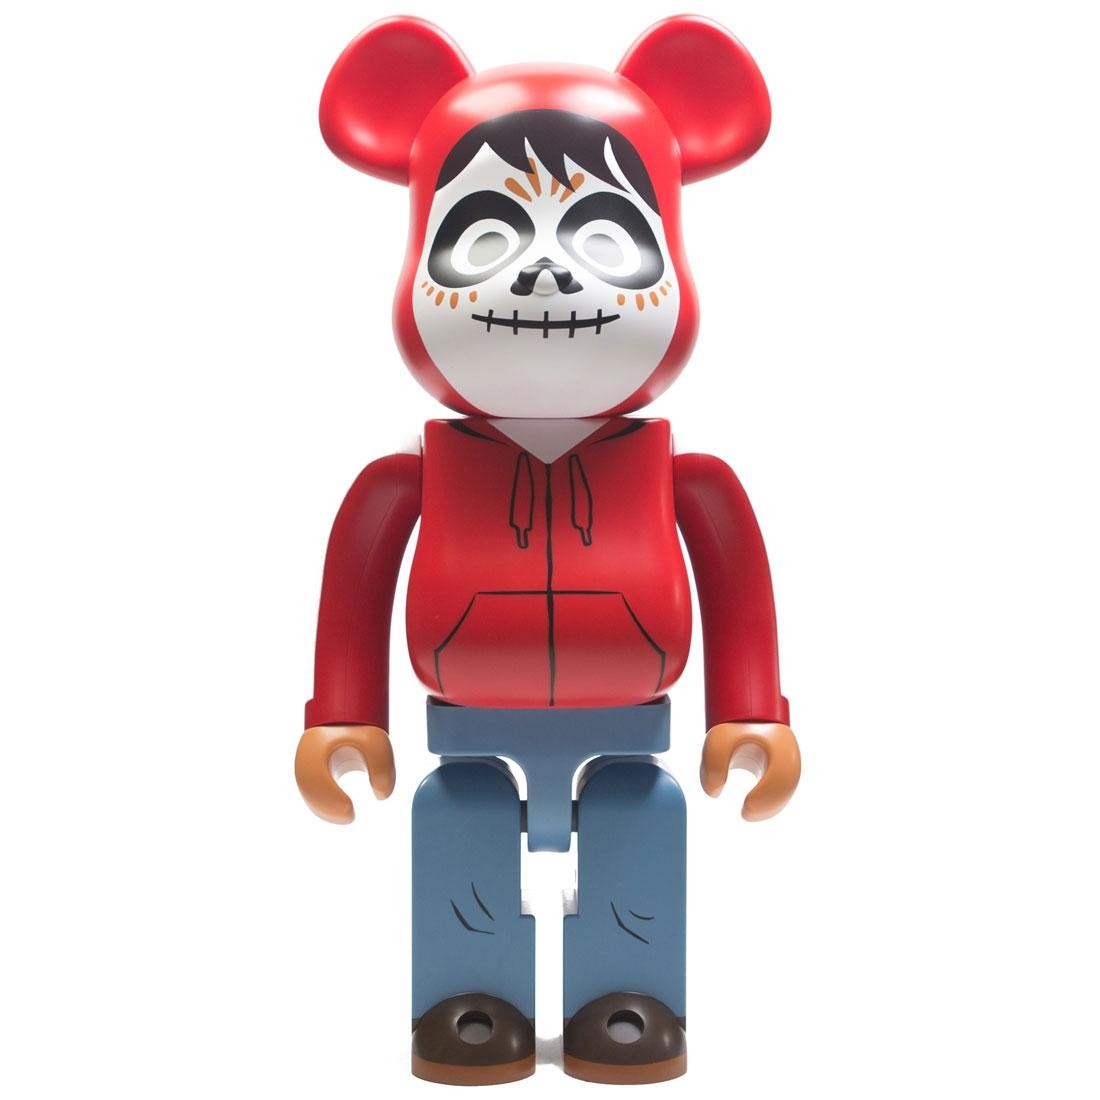 Medicom Miguel 1000% Bearbrick Figure (red)